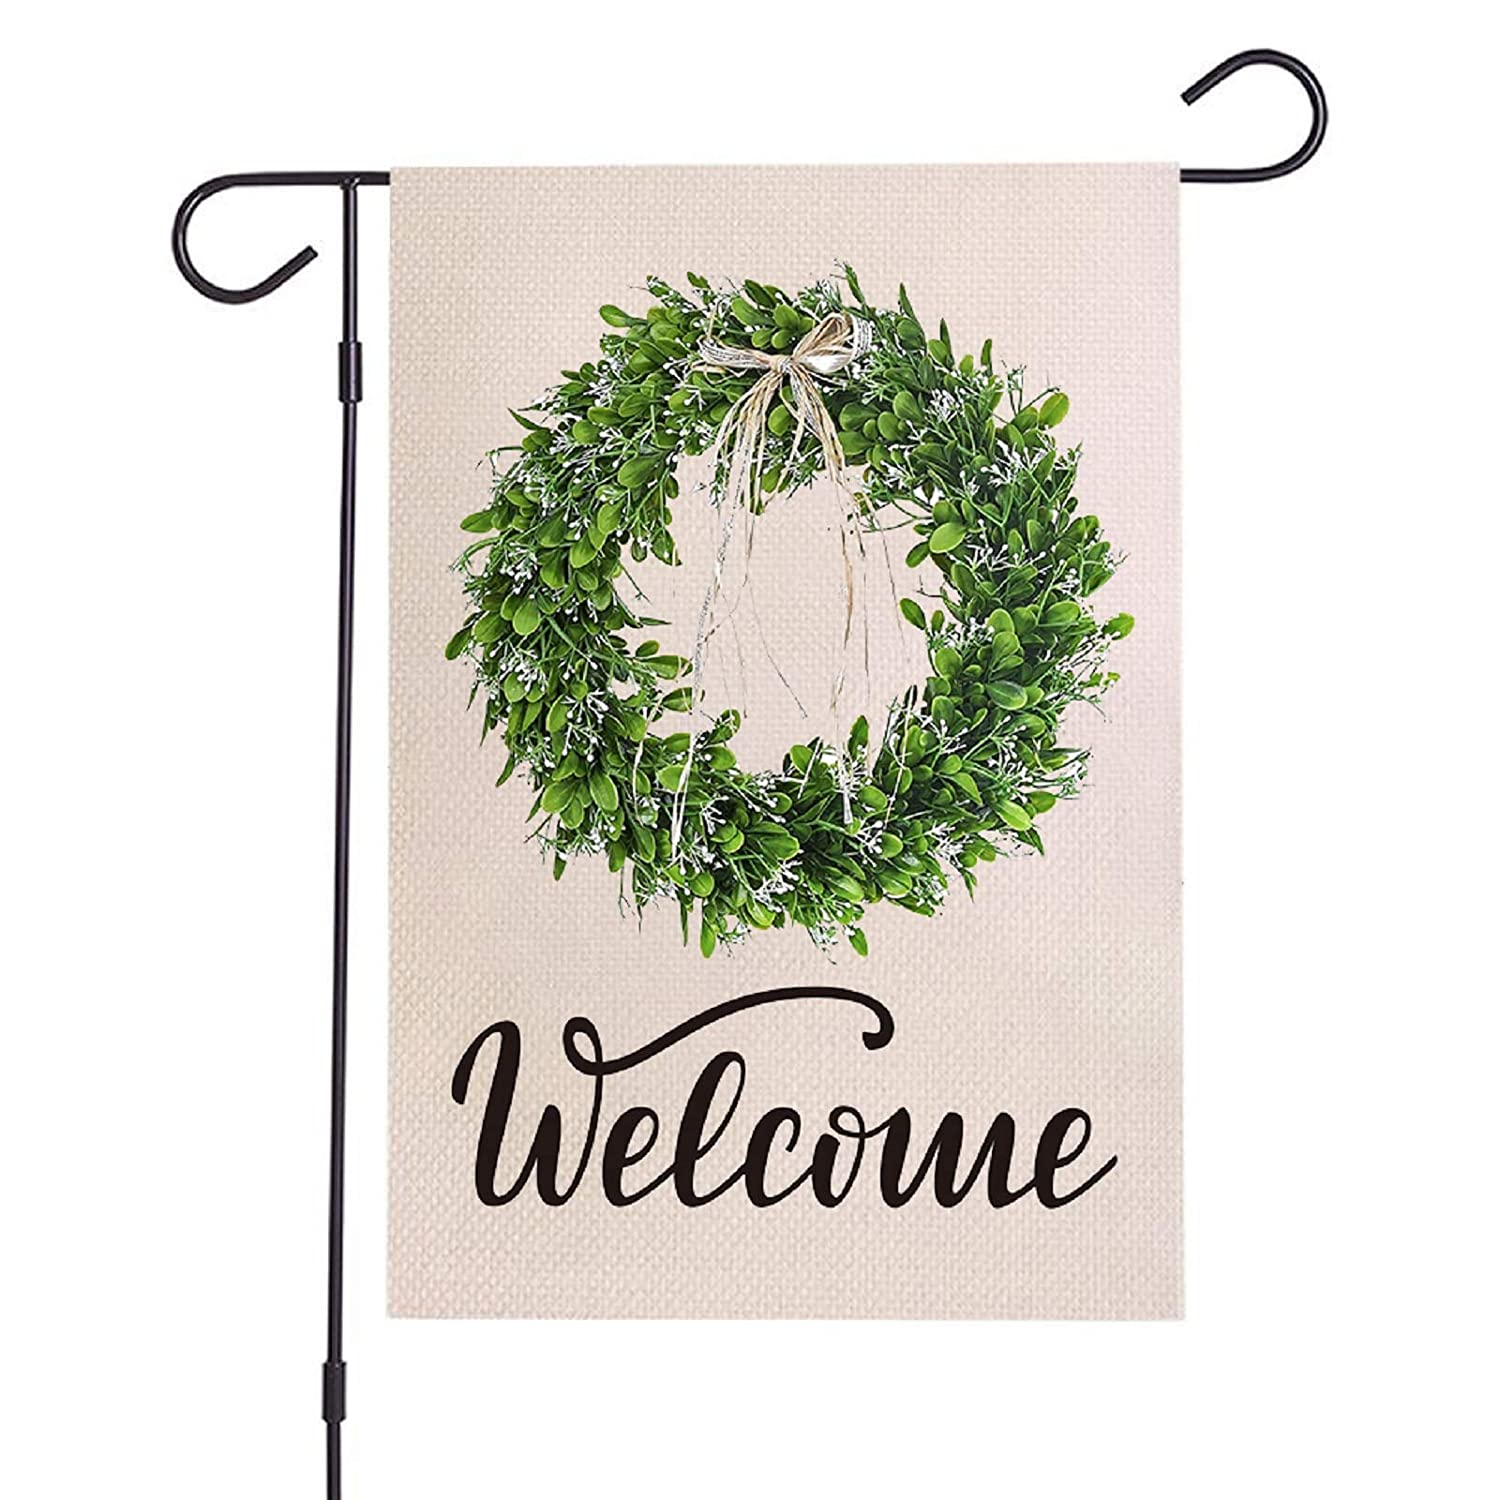 Boxwood Welcome Wreath Garden Flag - Vertical Double Sided ,Spring Summer Fall Valentine's Day Easter Burlap Yard Flag ,Outdoor Rustic Farmhouse Home Decor 12 x 18 Inches(Green)